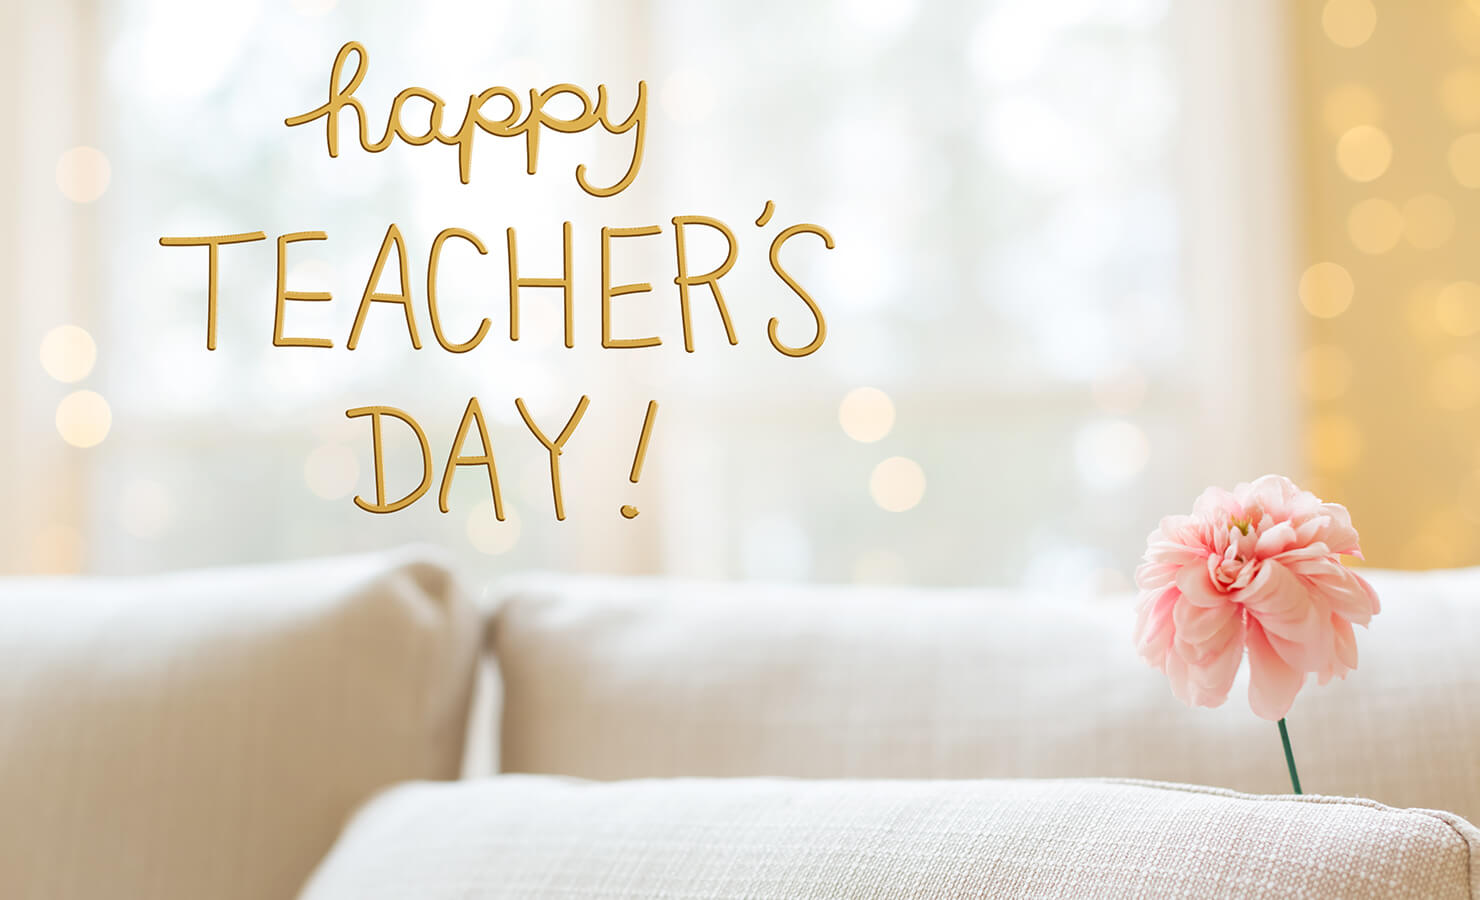 Teachers' Day Gift Guide: Score Points with Your Teacher